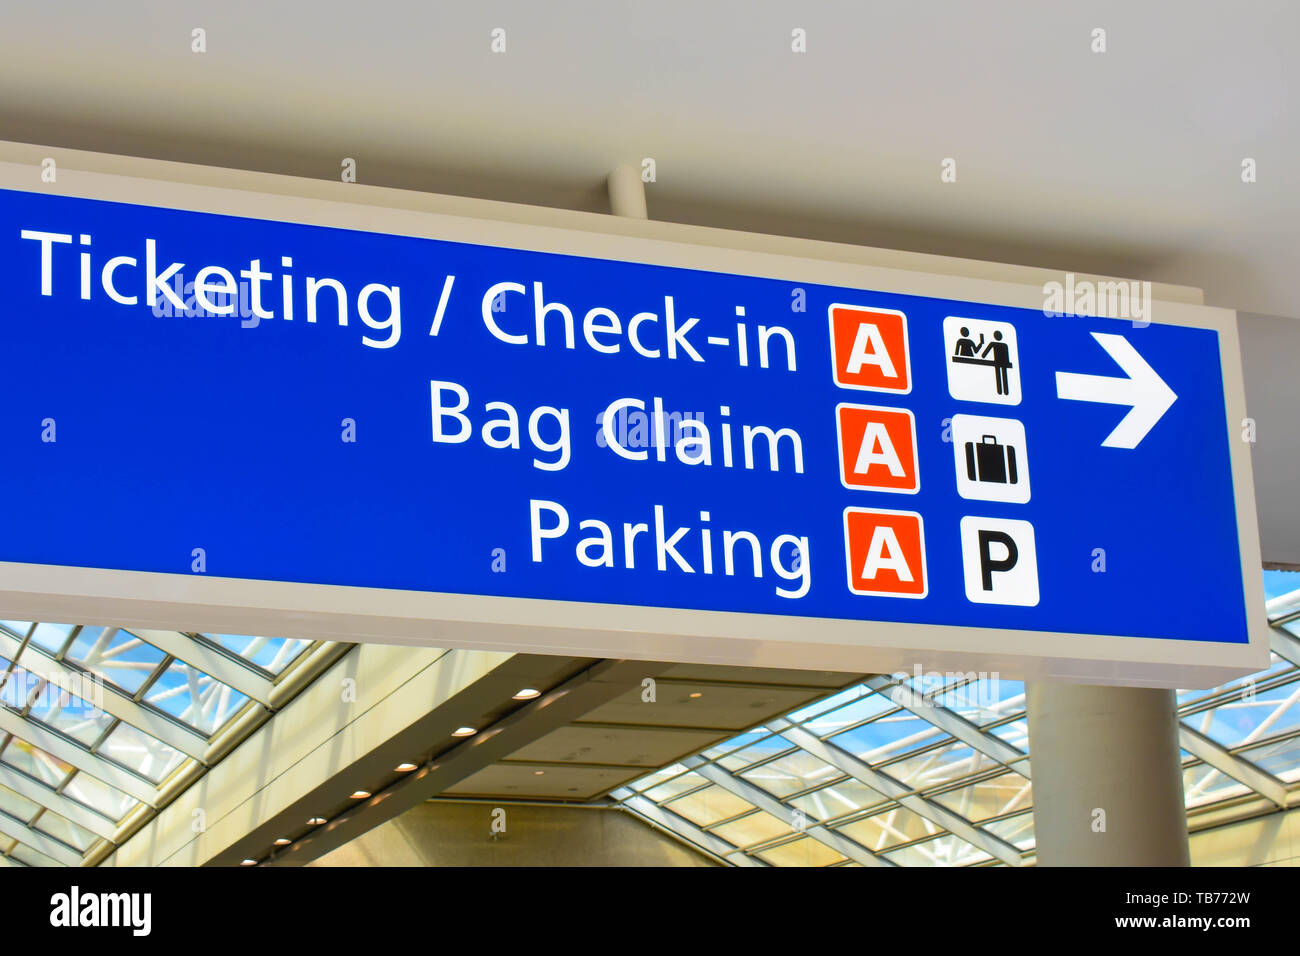 Orlando, Florida.  March 01, 2019. Top view of Terminal A Ticketing and Check-in sign at Orlando International Airport . - Stock Image